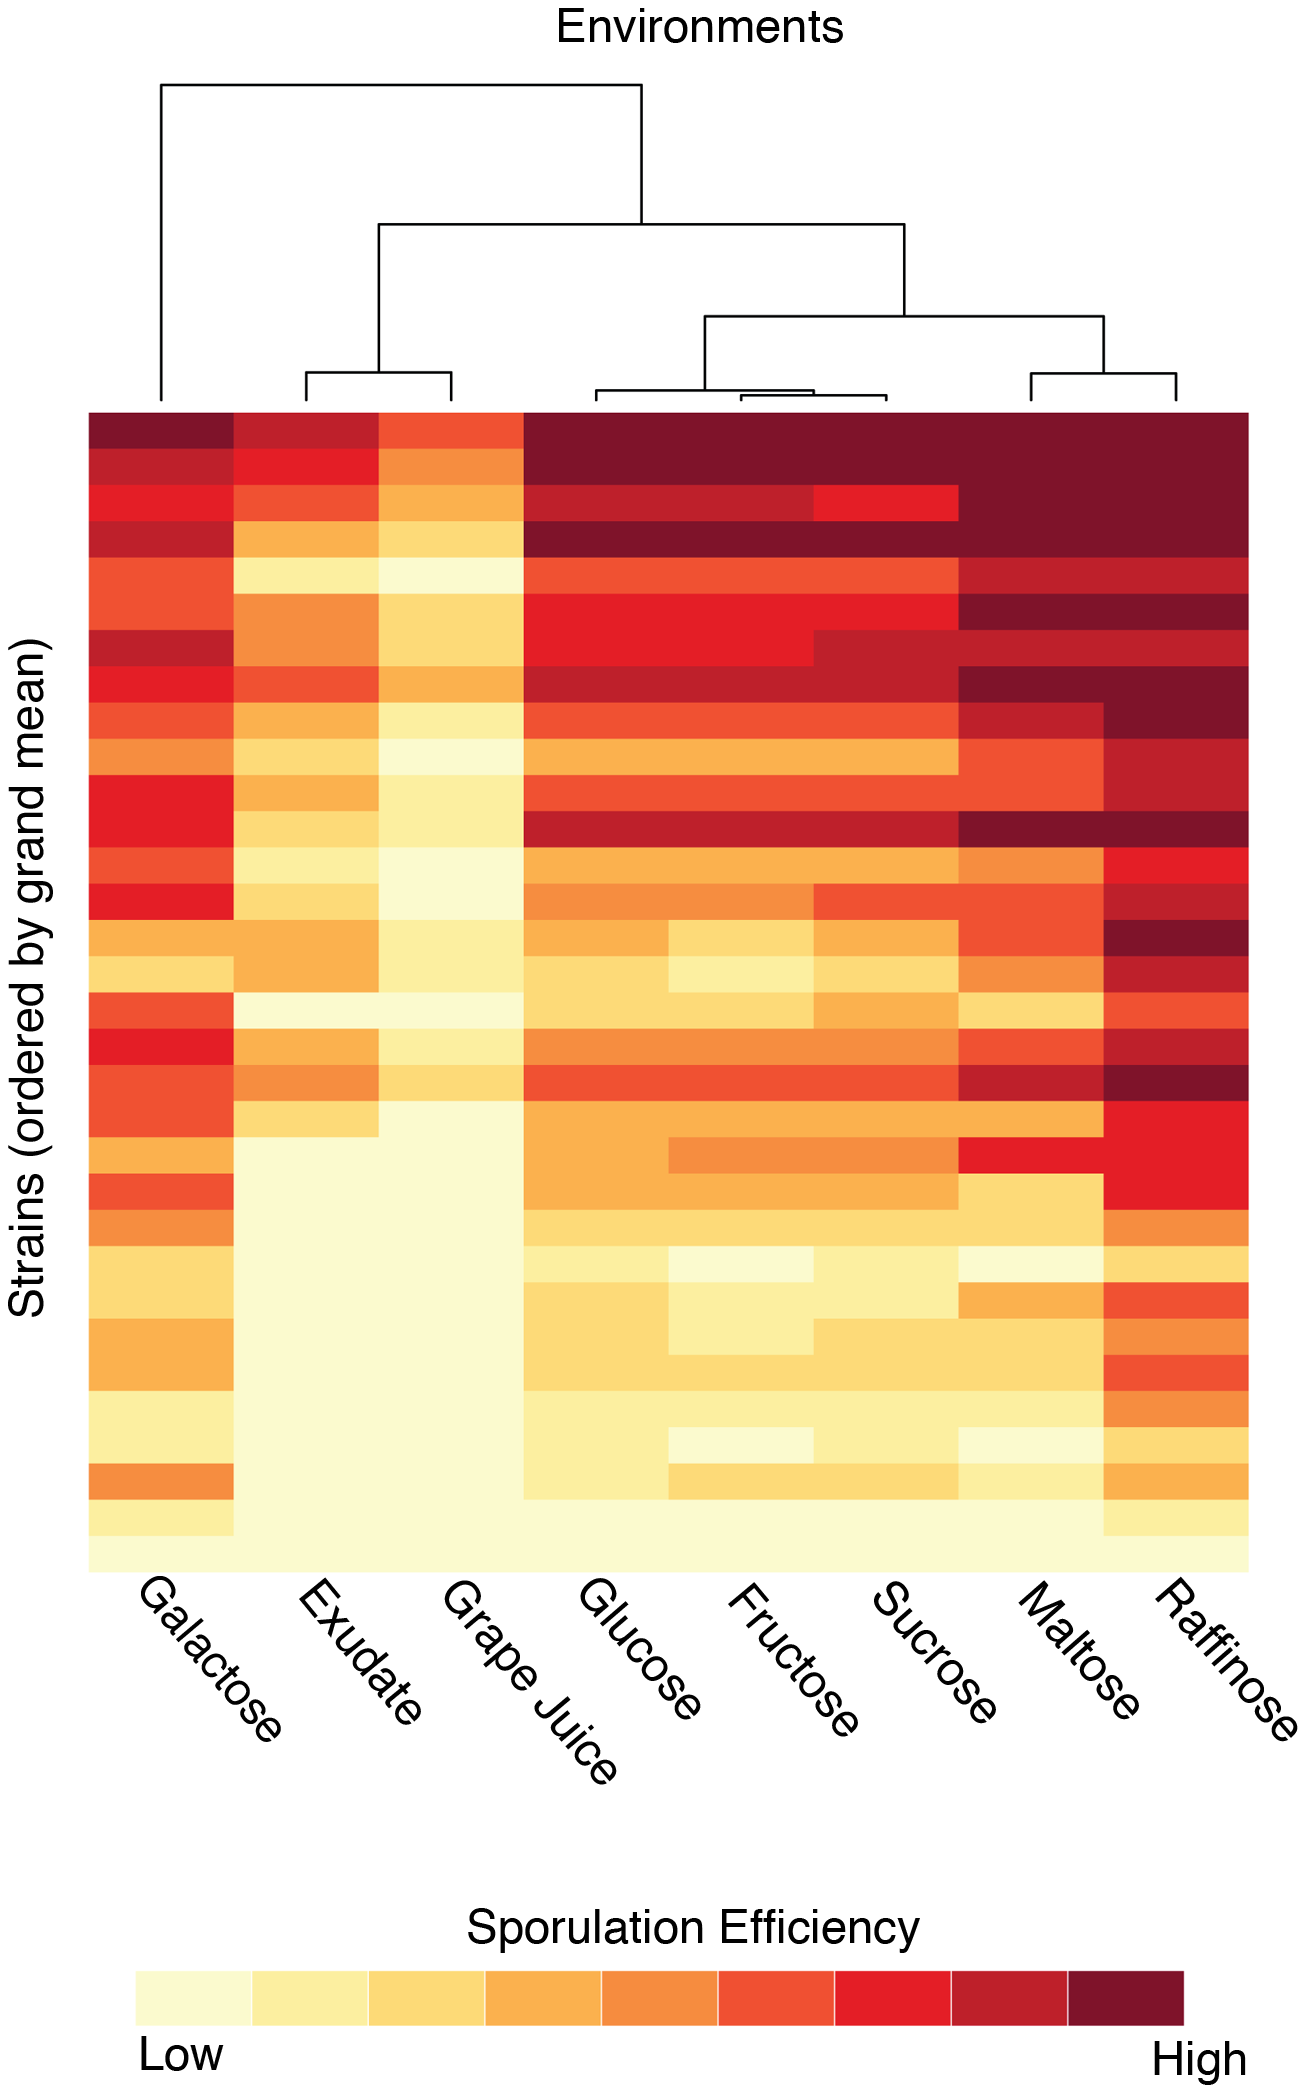 Sporulation efficiencies of the strains clustered by environment.